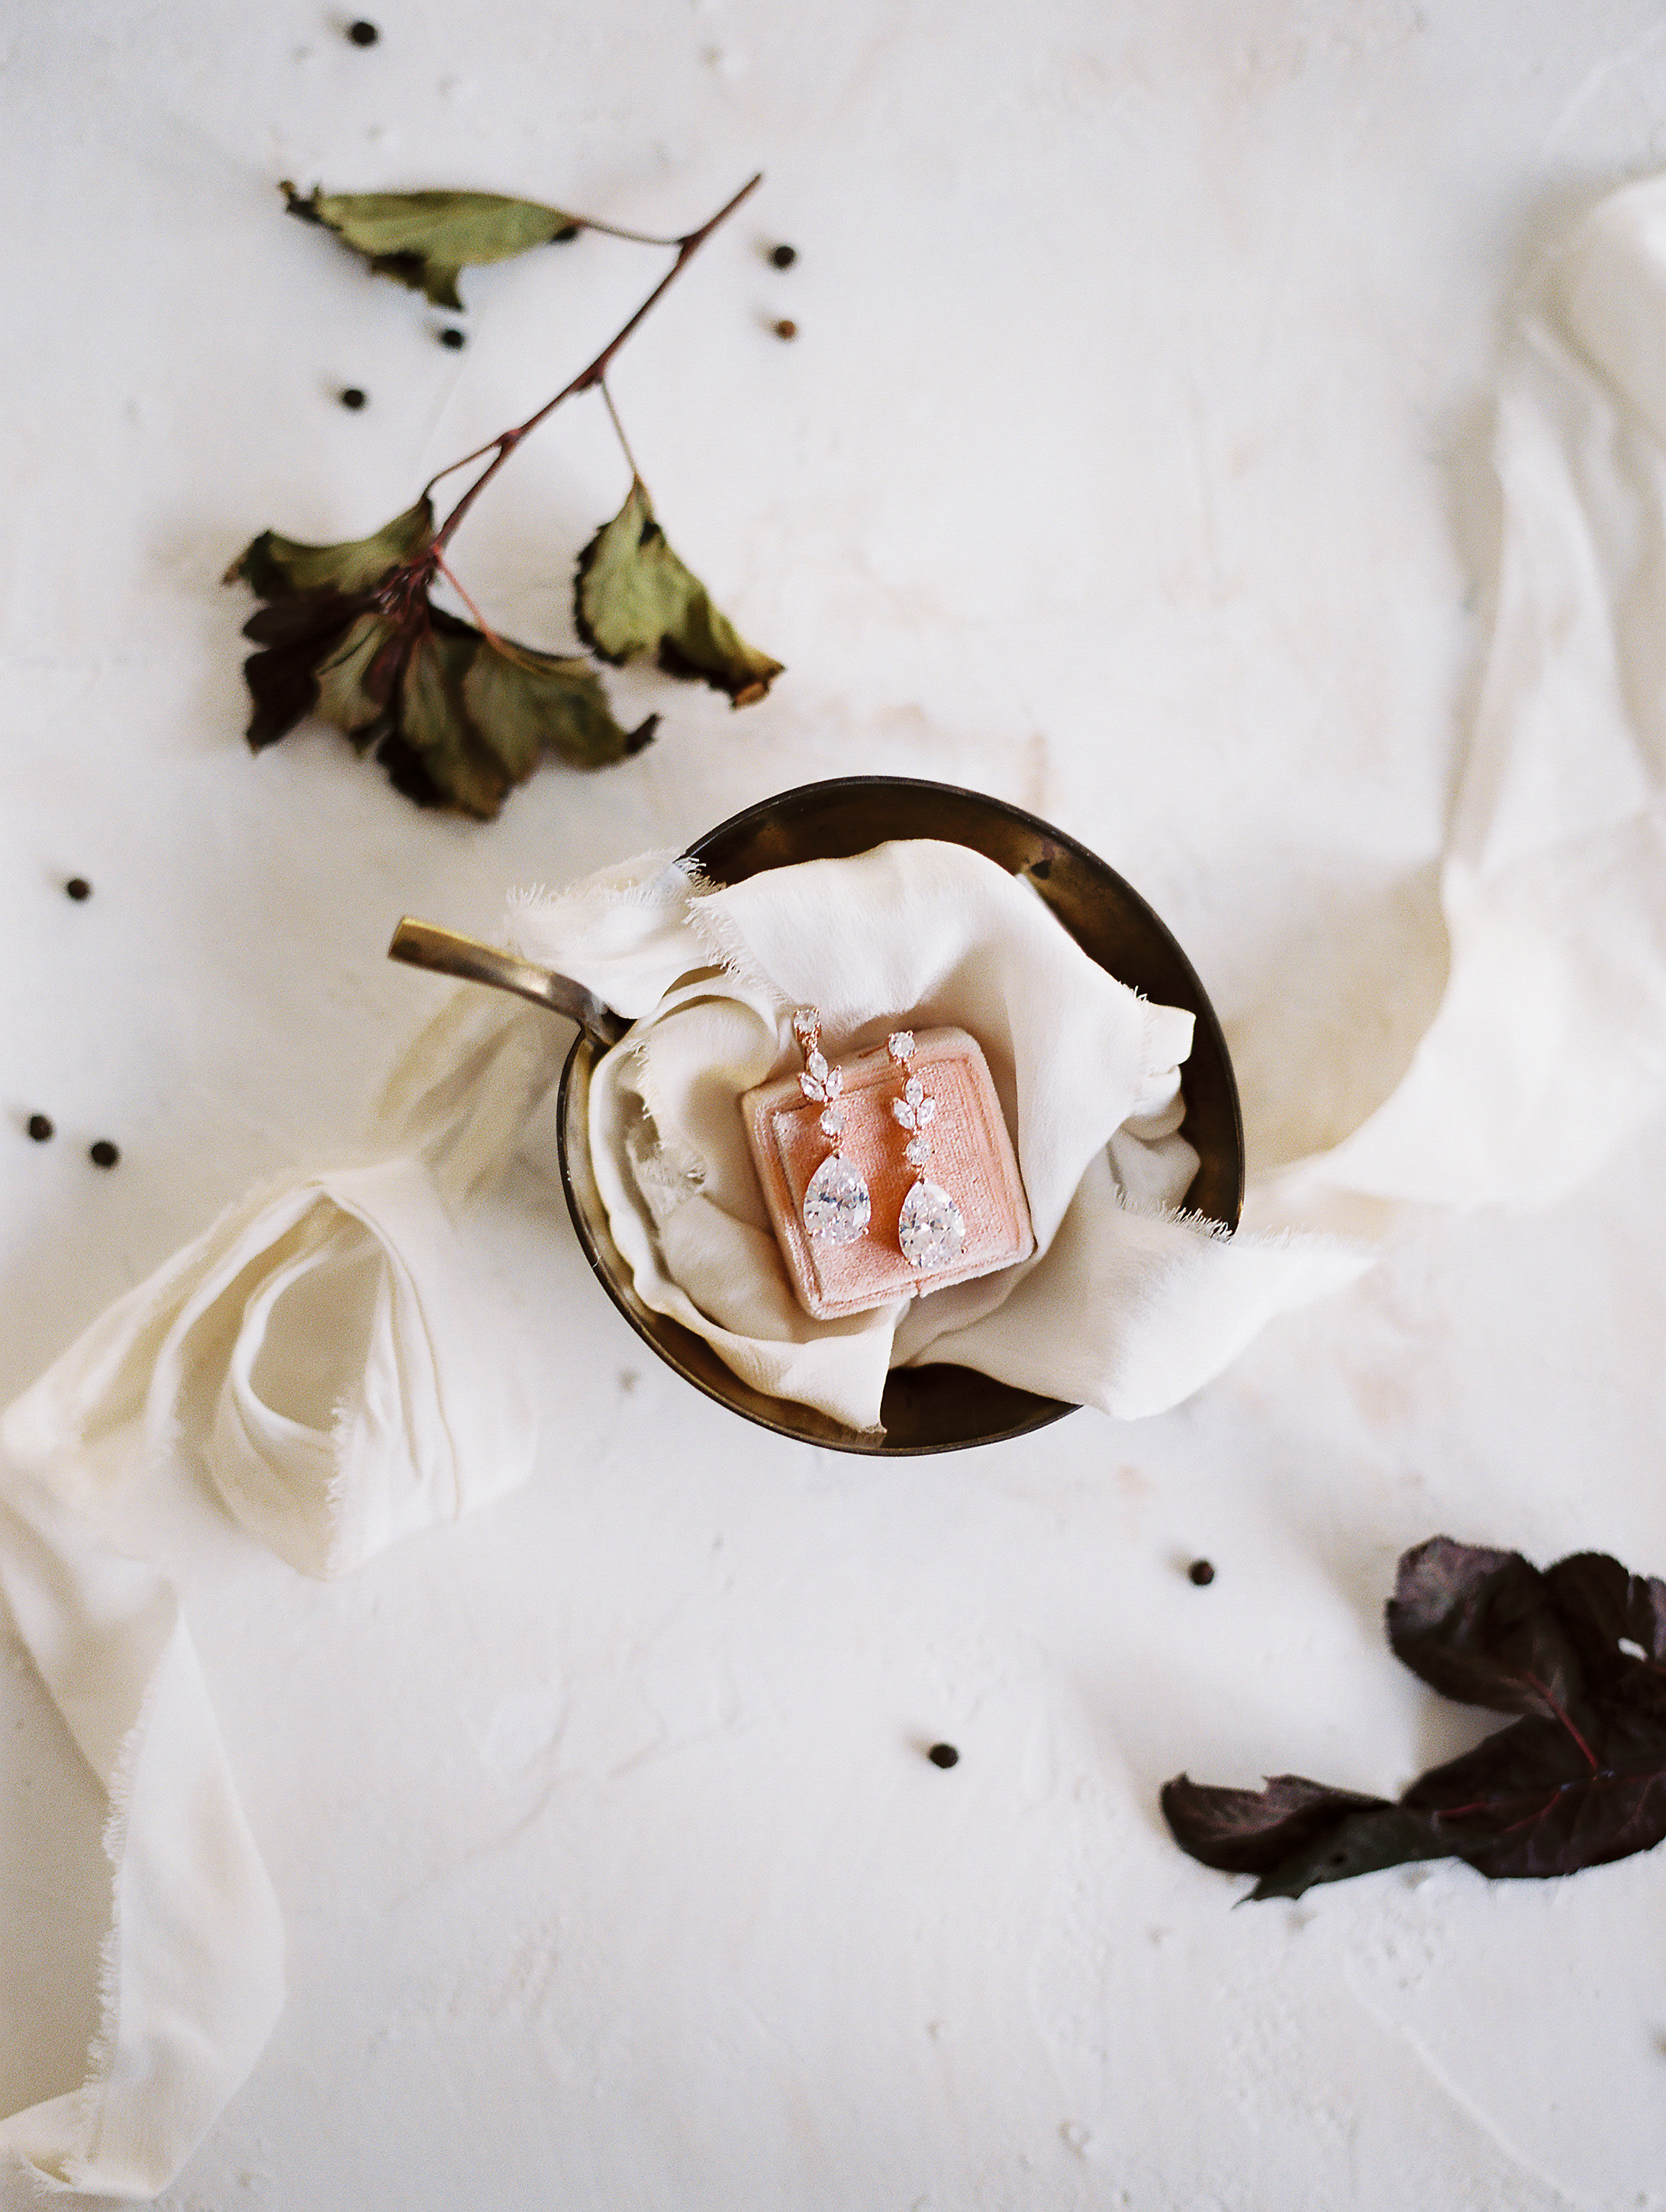 WHEN-SHE-KNEW-PHOTOGRAPHY-STYLED-WEDDING-EDITORIAL-OREGON-127.jpg